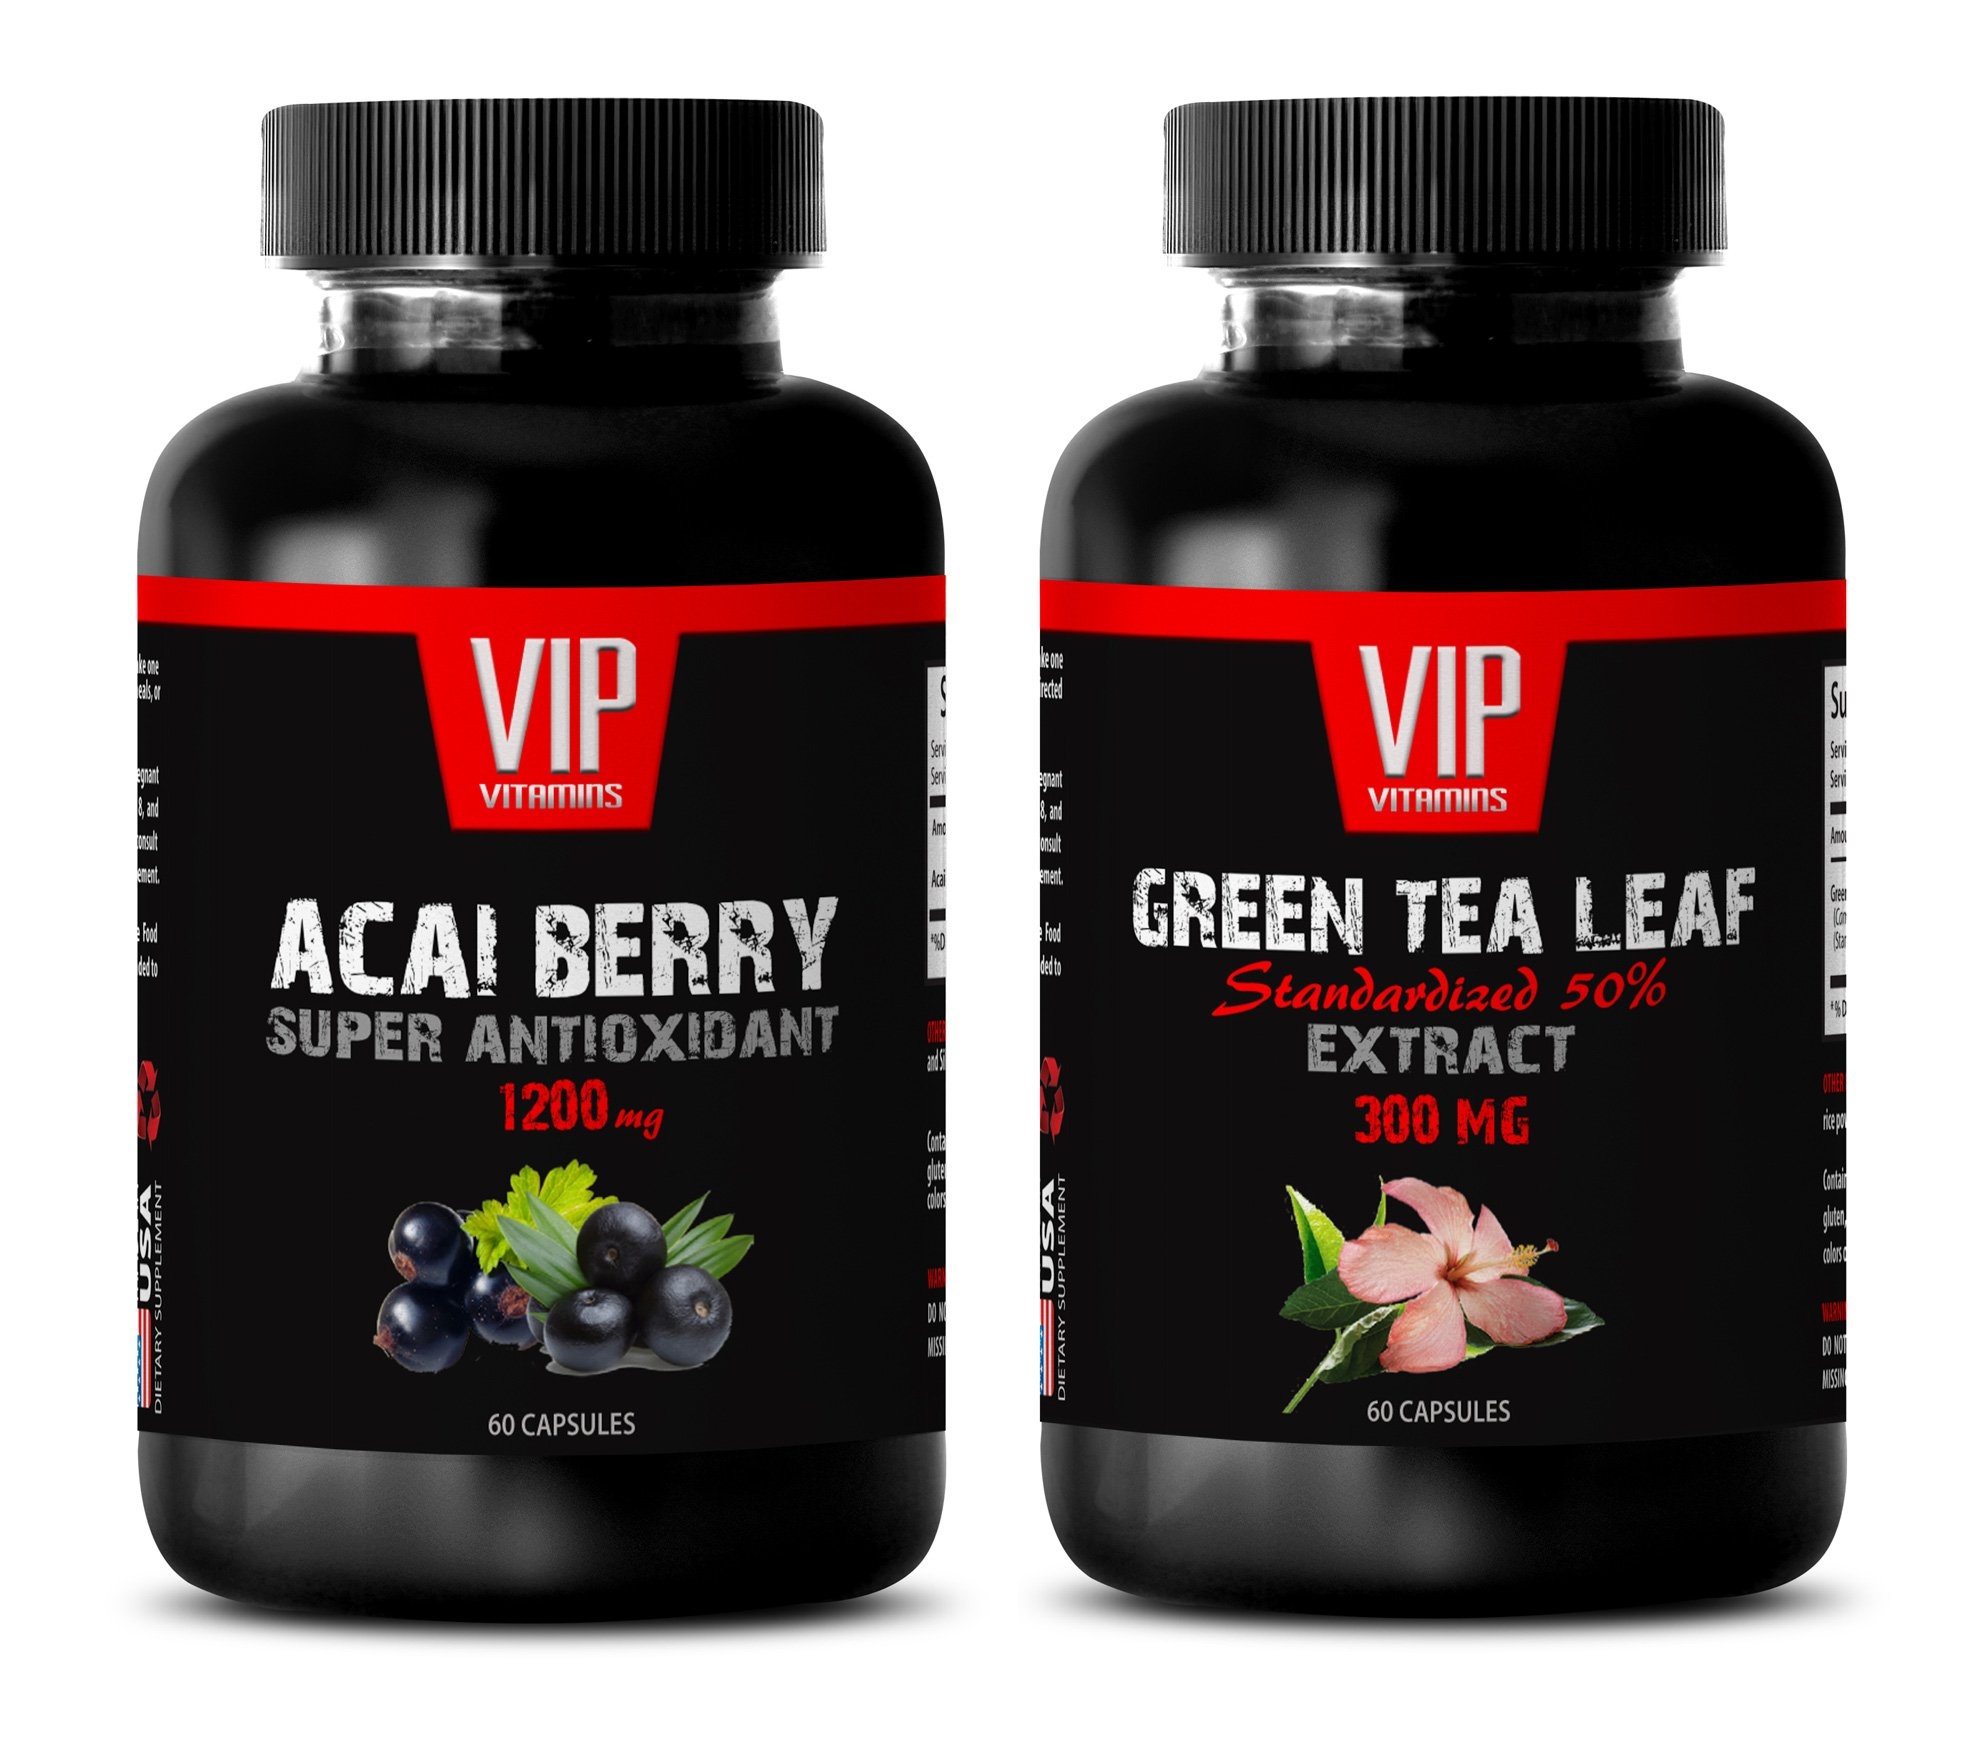 fat burner and metabolism booster - ACAI BERRY - GREEN TEA - acai chews - (2 Bottles Combo) by VIP VITAMINS LLC (Image #1)